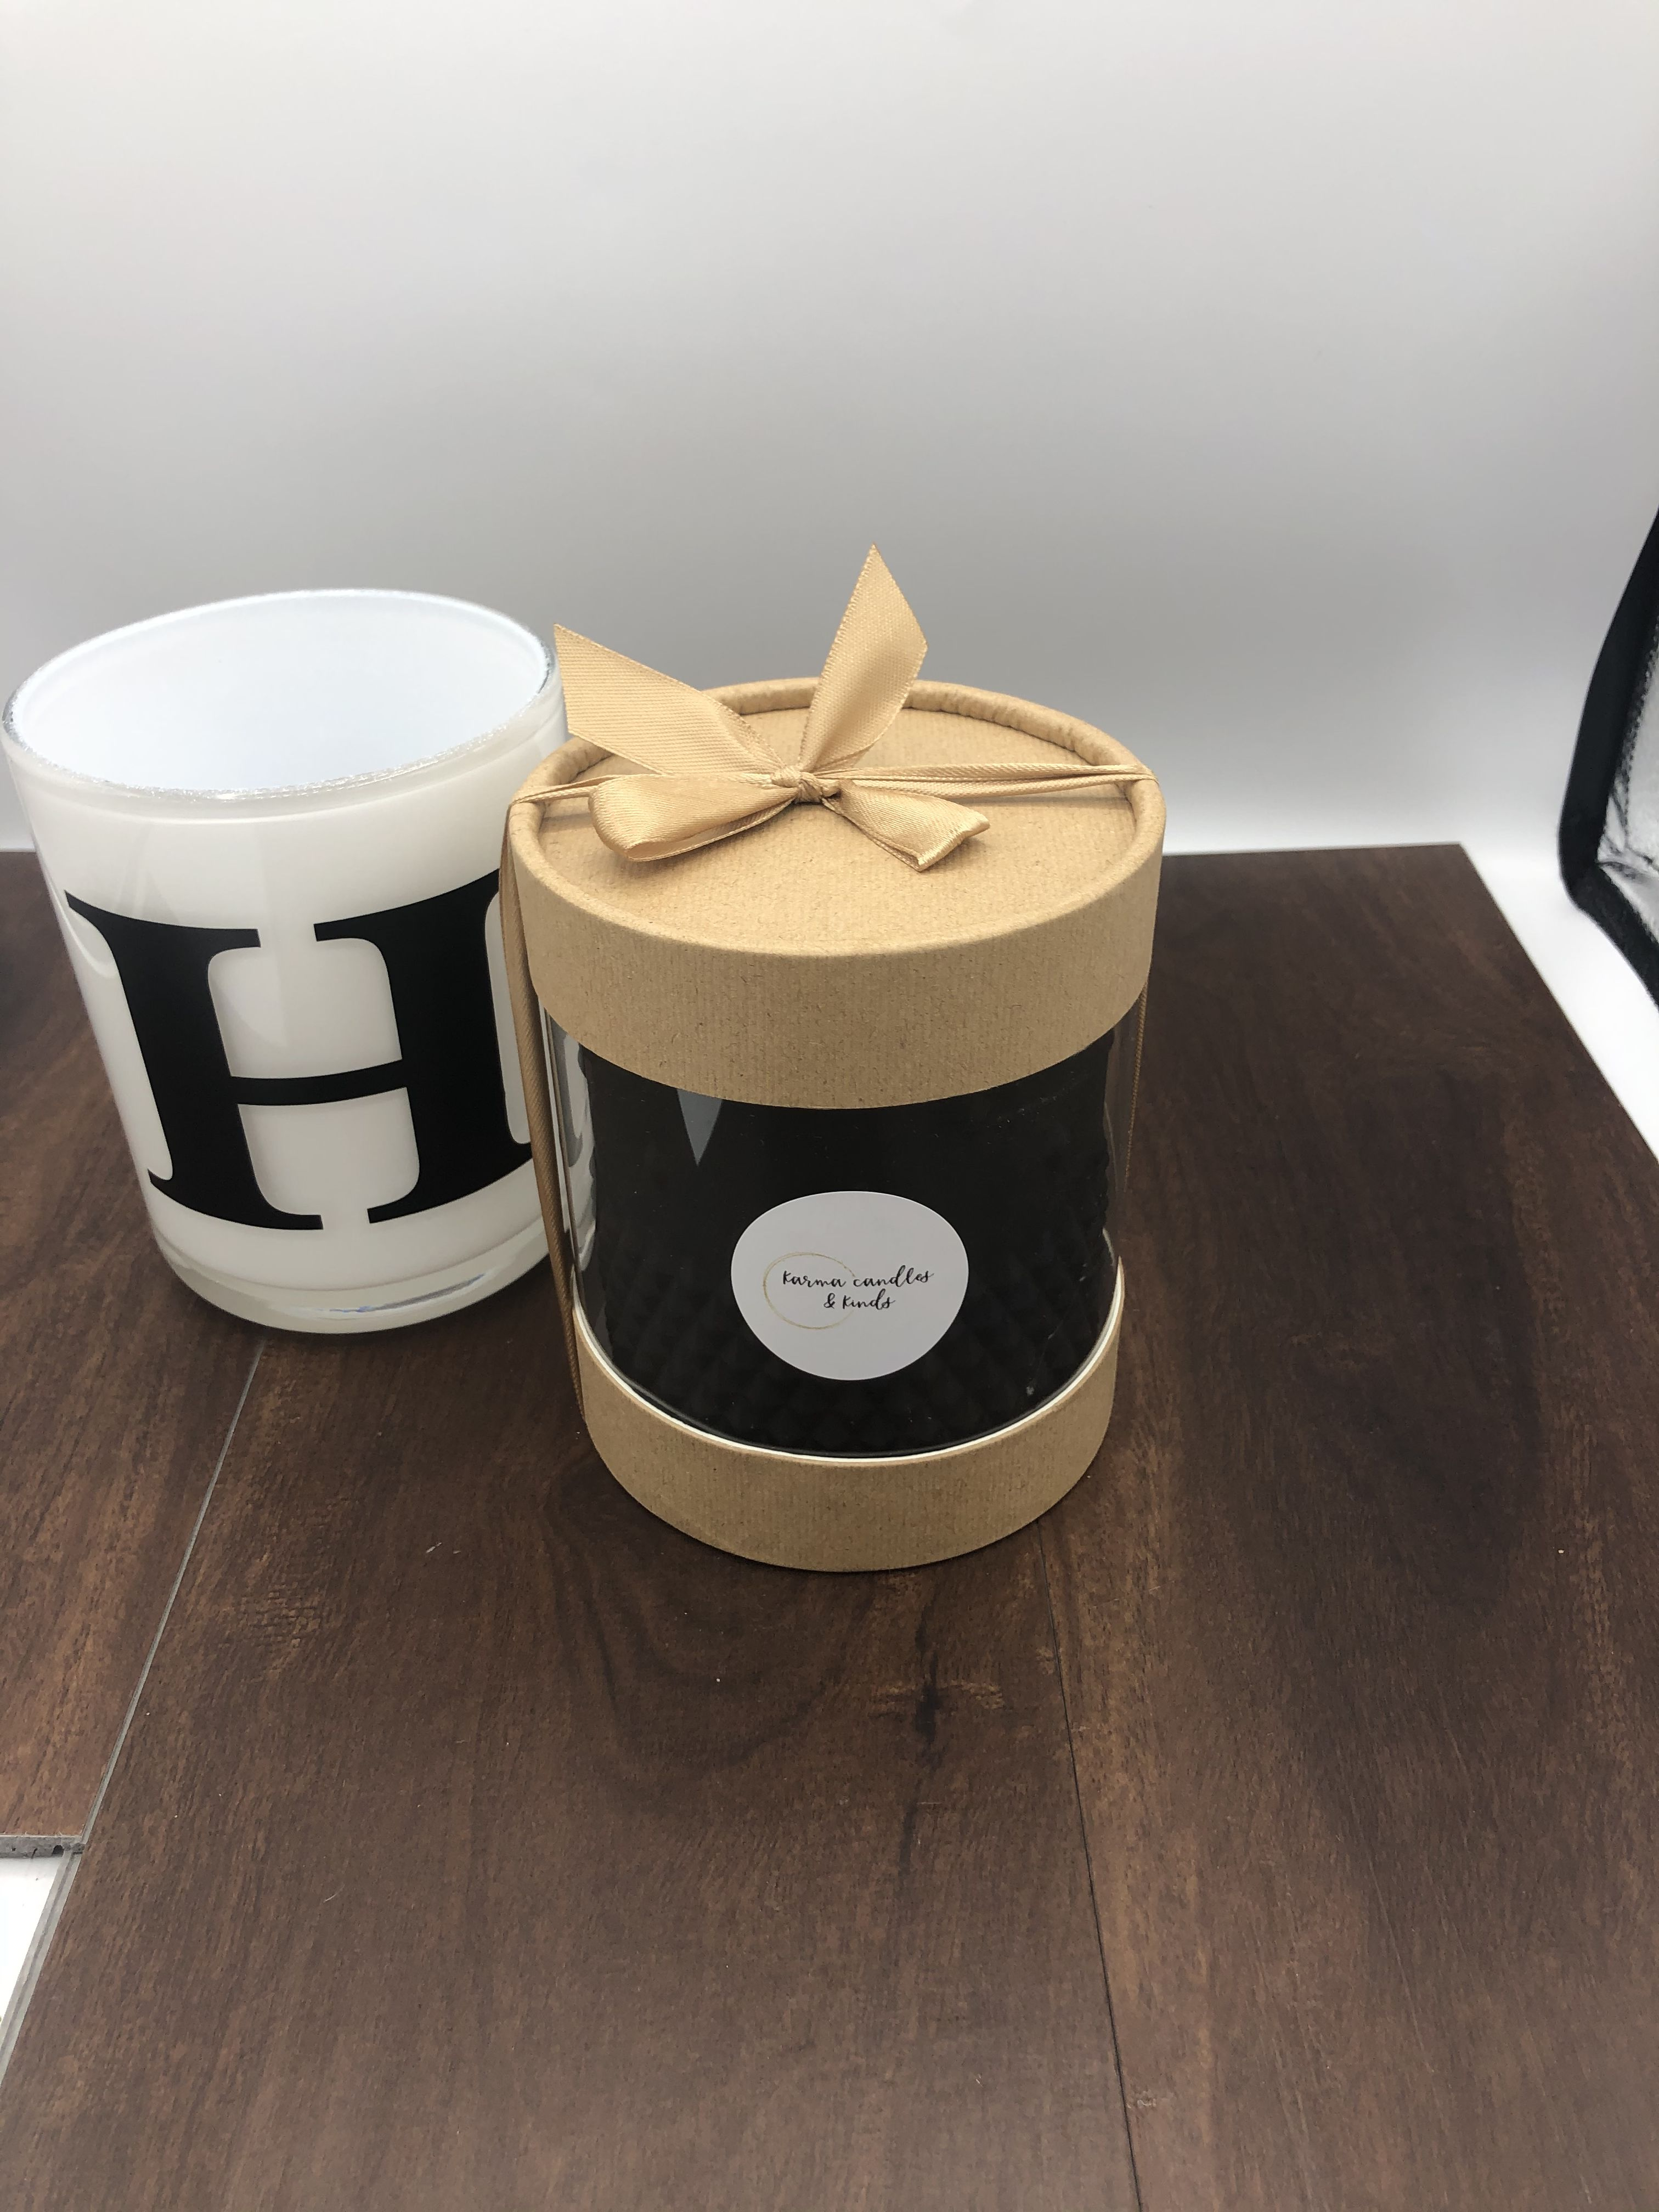 Our initial candles are perfect for birthday presents